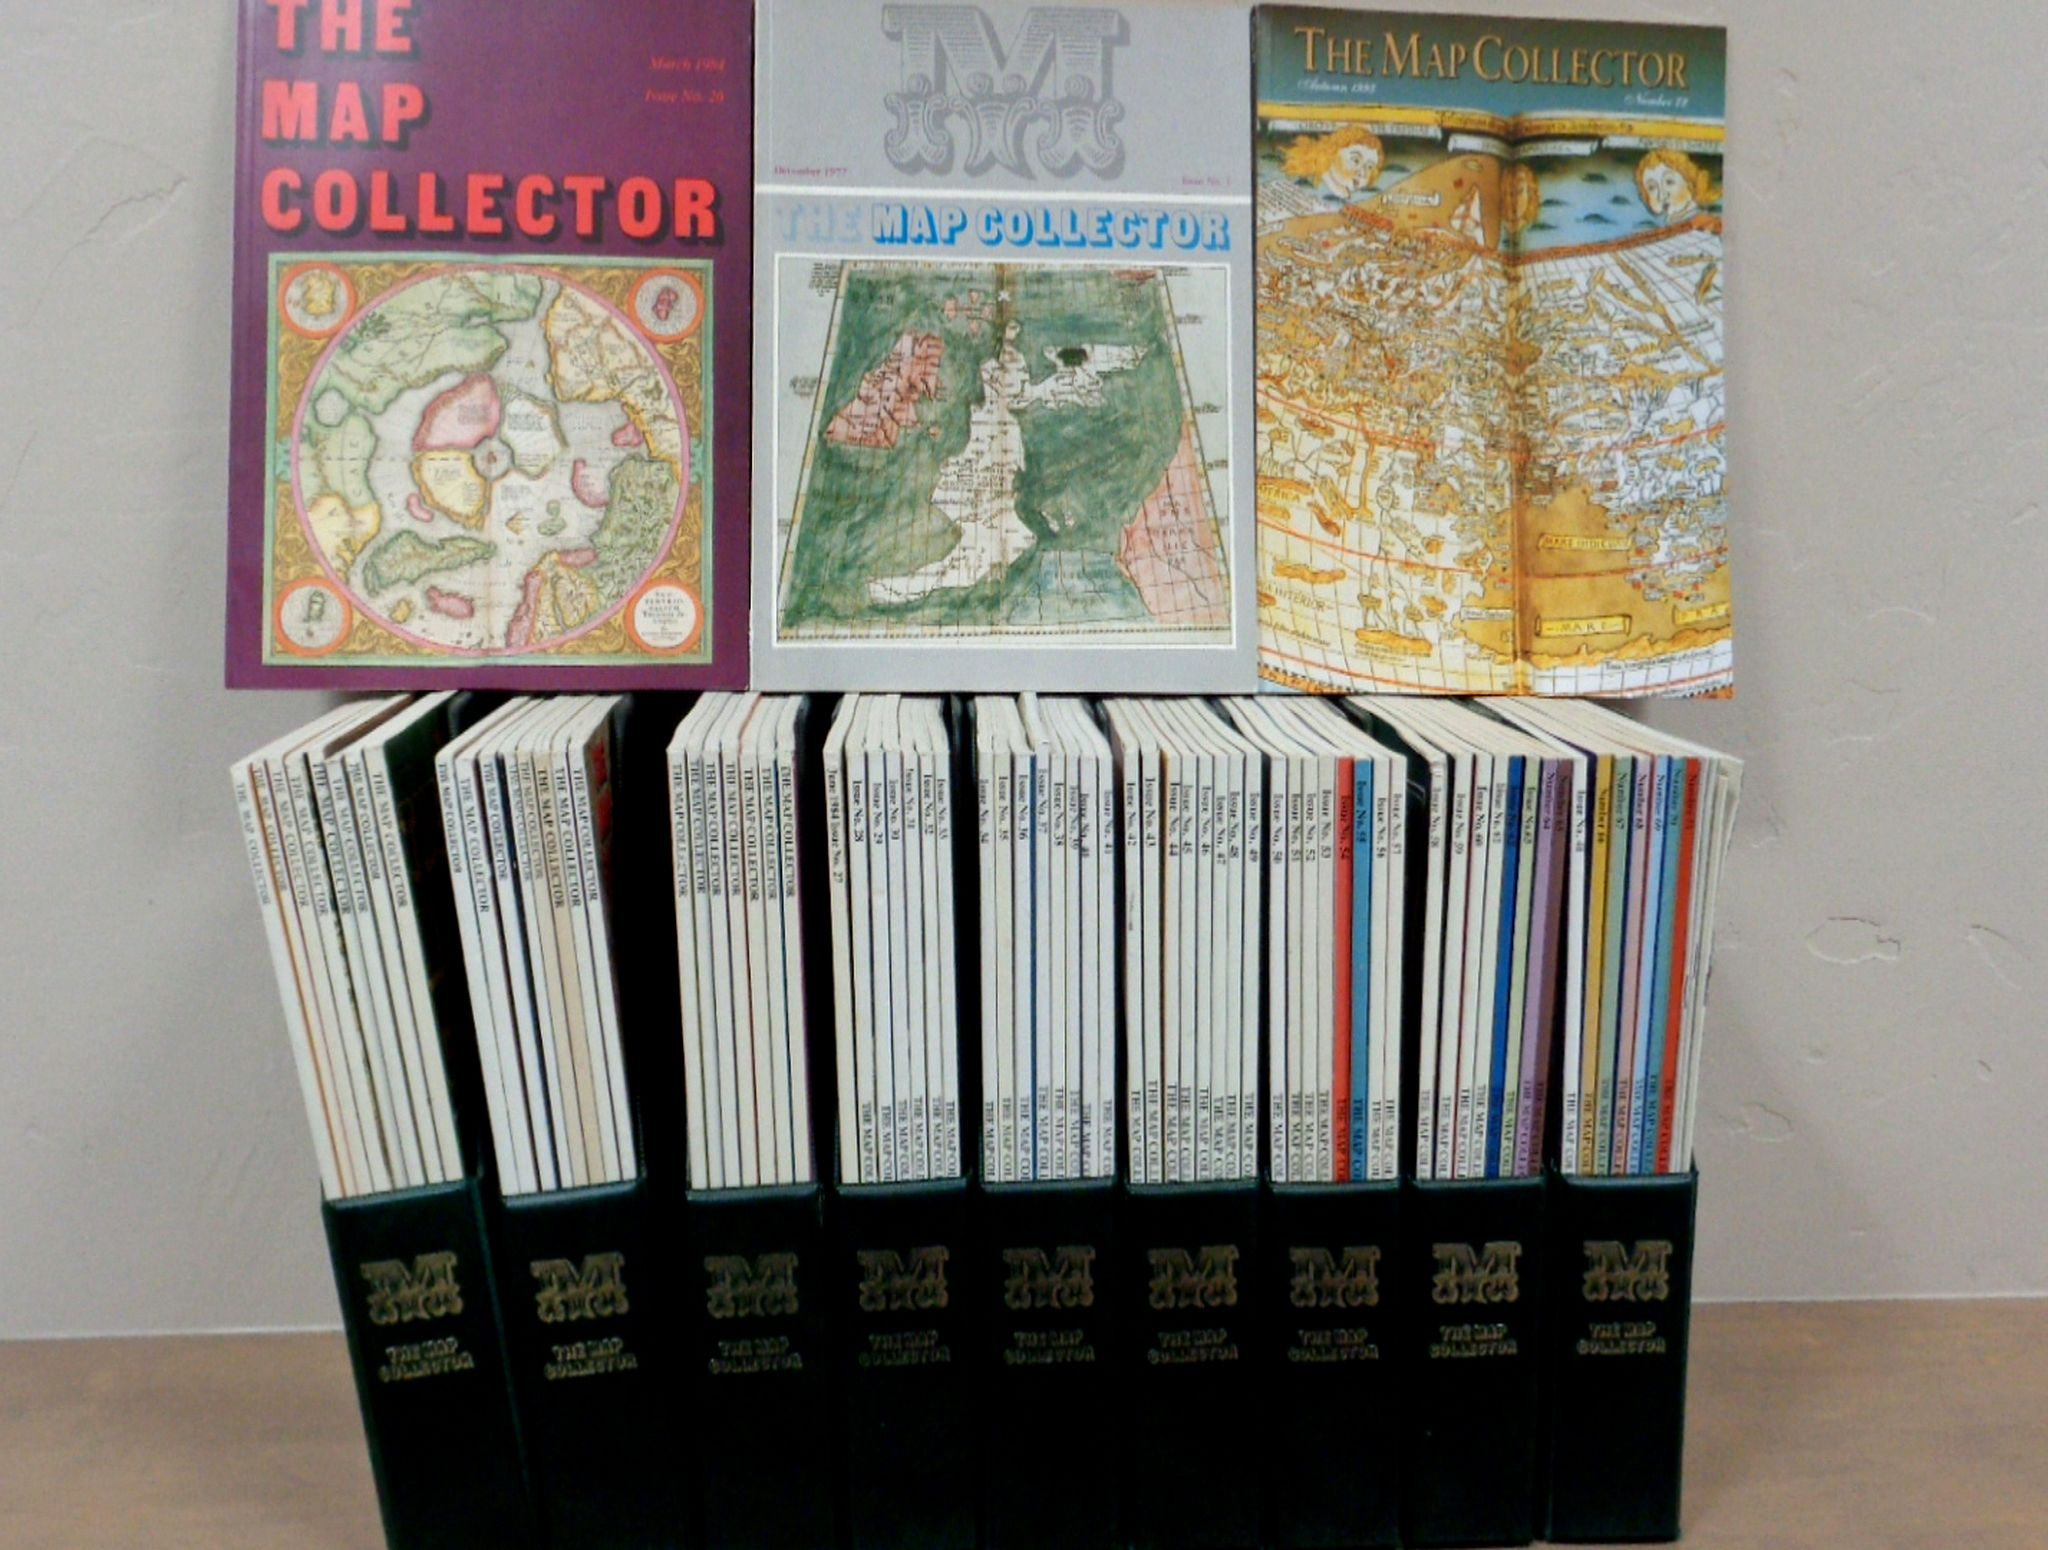 The Map Collector Publications, 73 of 74 issues of The Map Collector Magazine., antique map, old maps